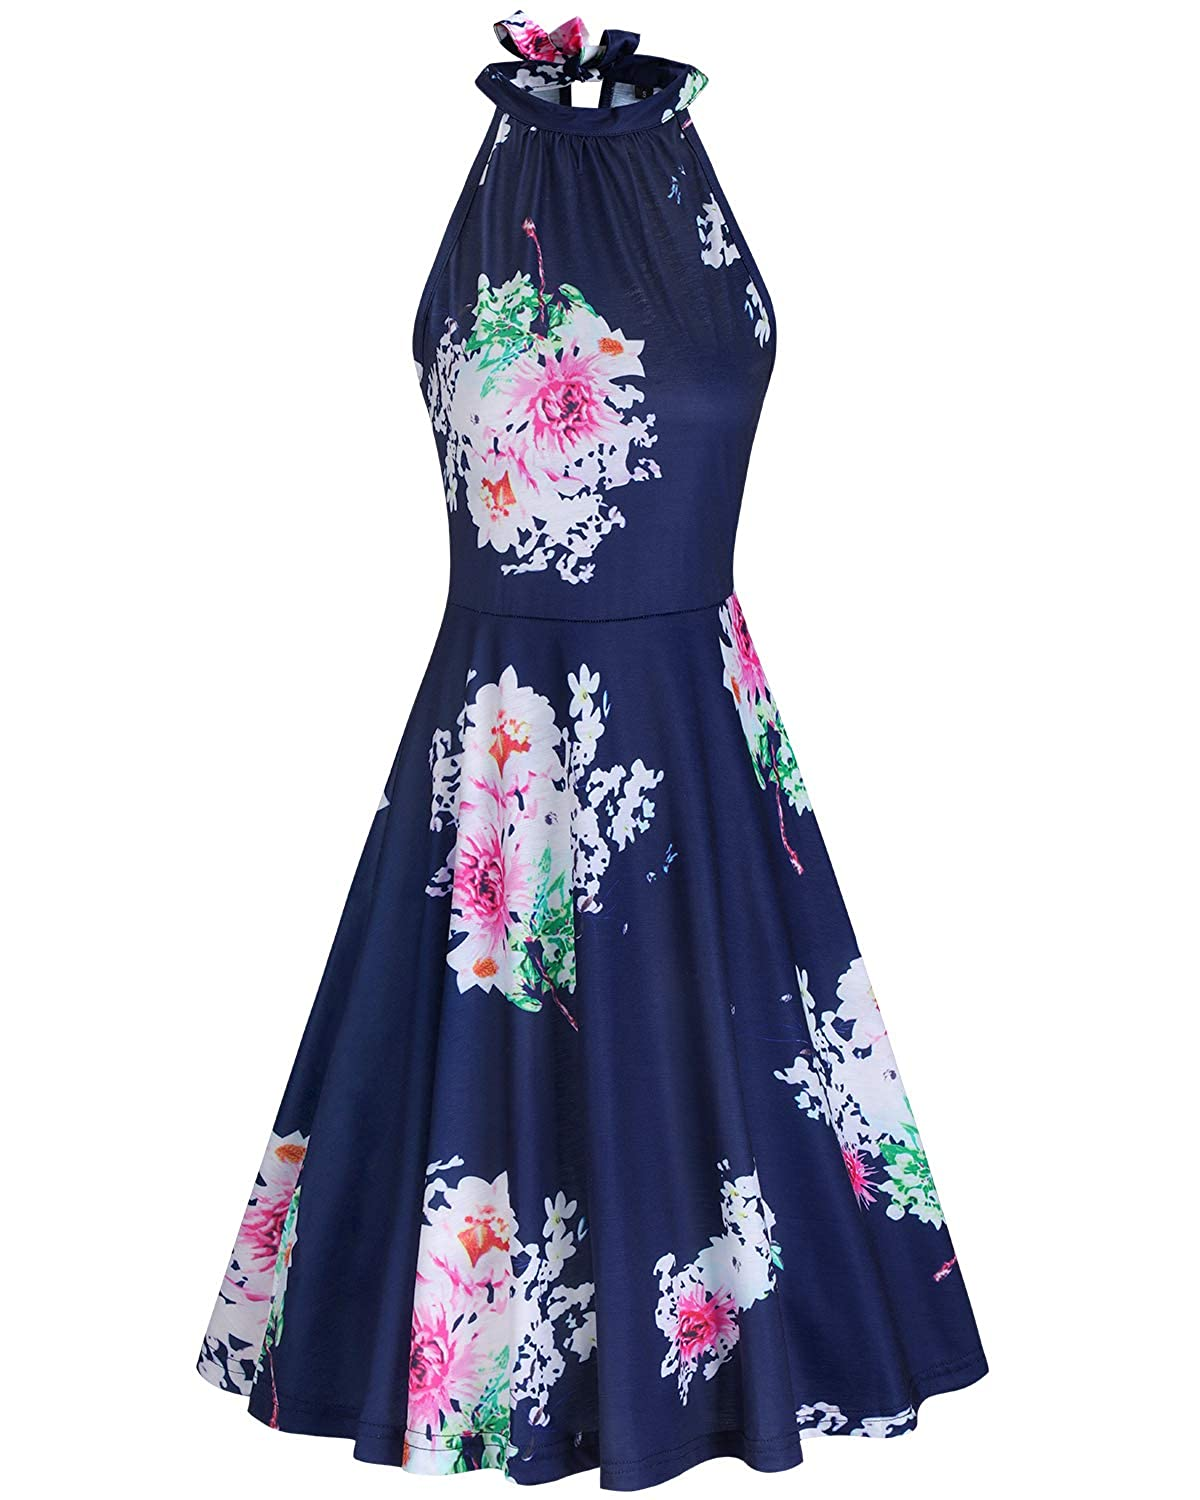 a02ea1c9316 ULTRANICE Women s Halter Neck Floral Summer Casual Sundress at Amazon  Women s Clothing store